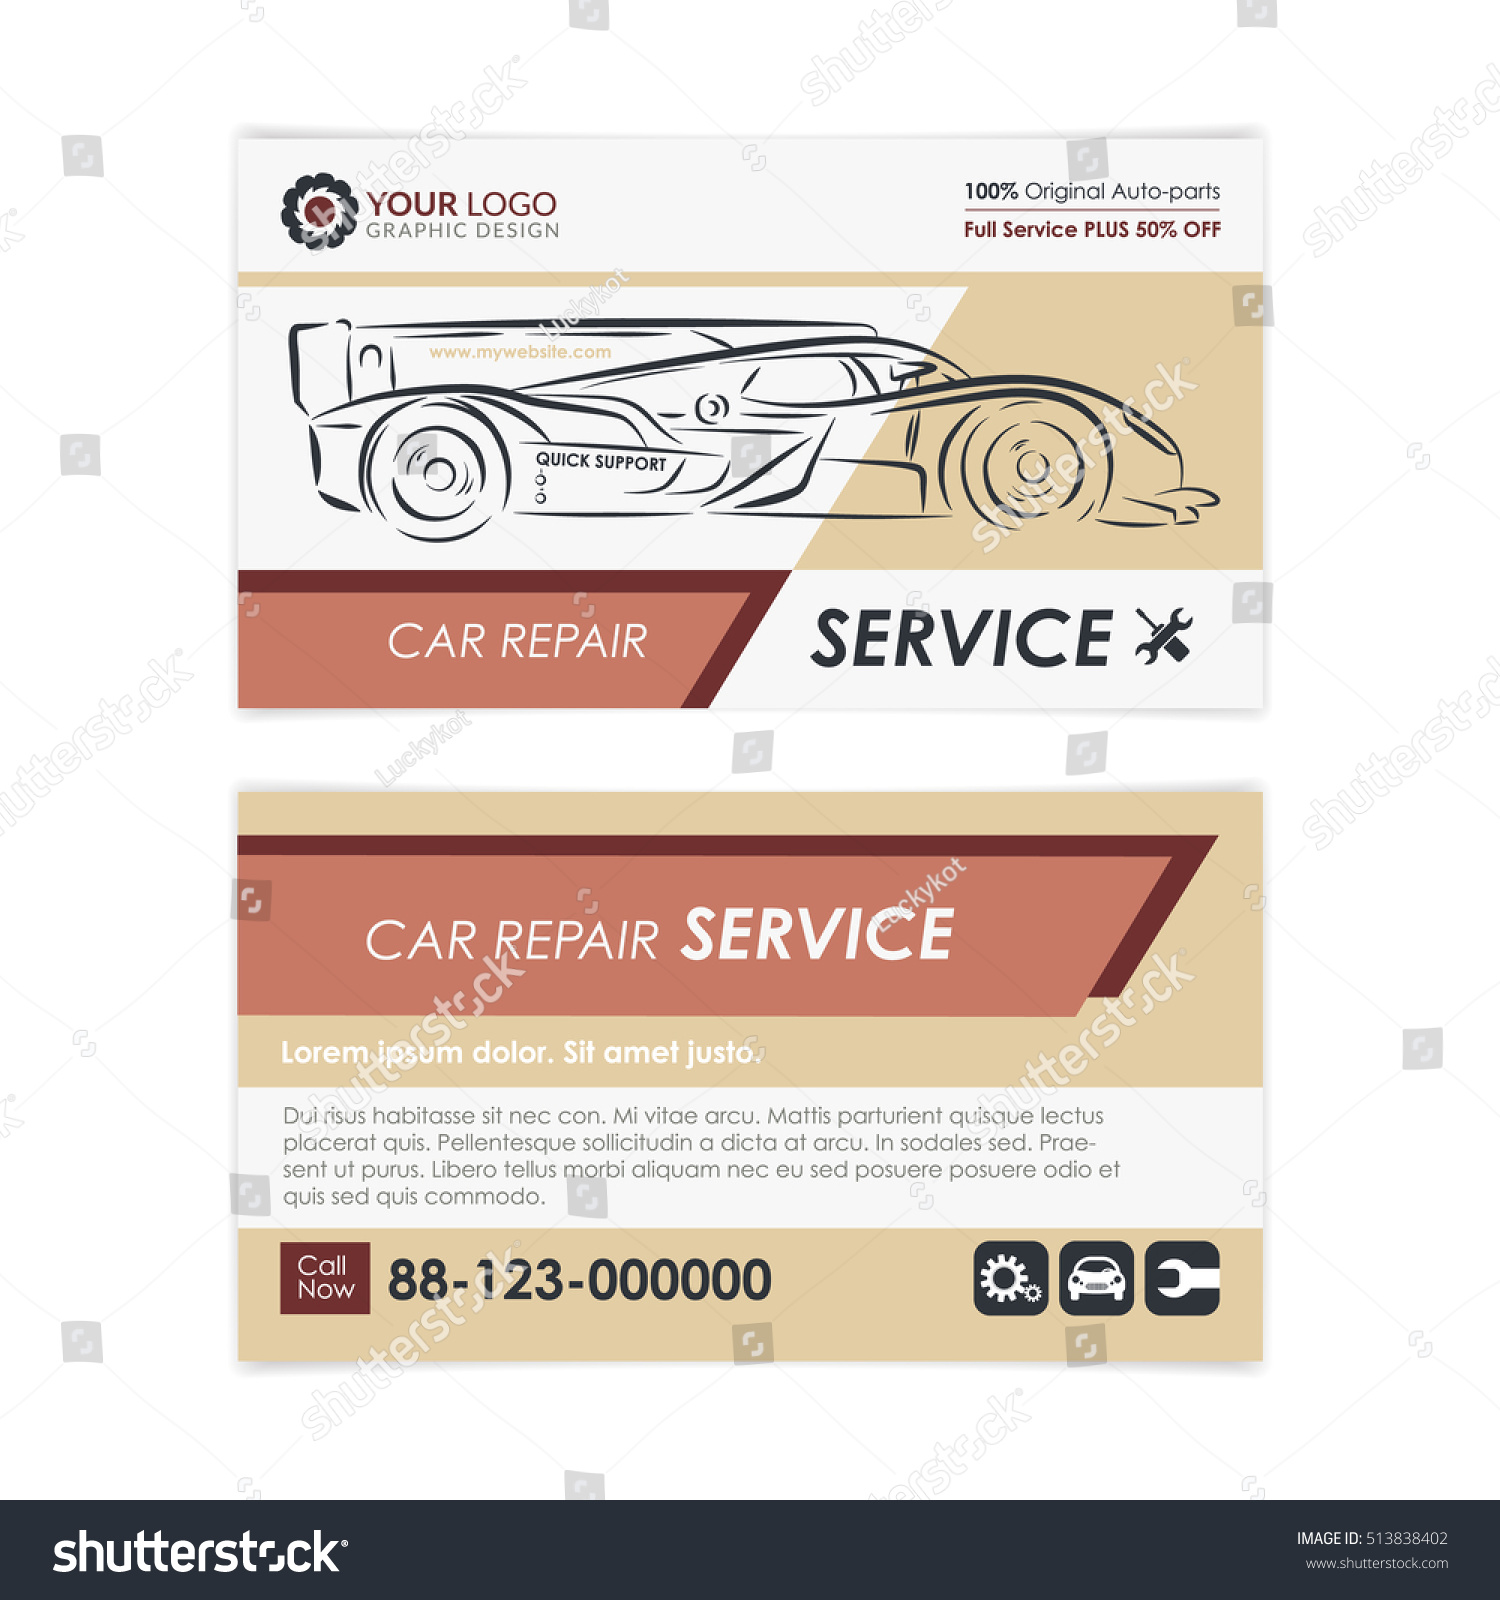 Vintage Auto Repair Business Card Template Stock Vector 513838402 ...